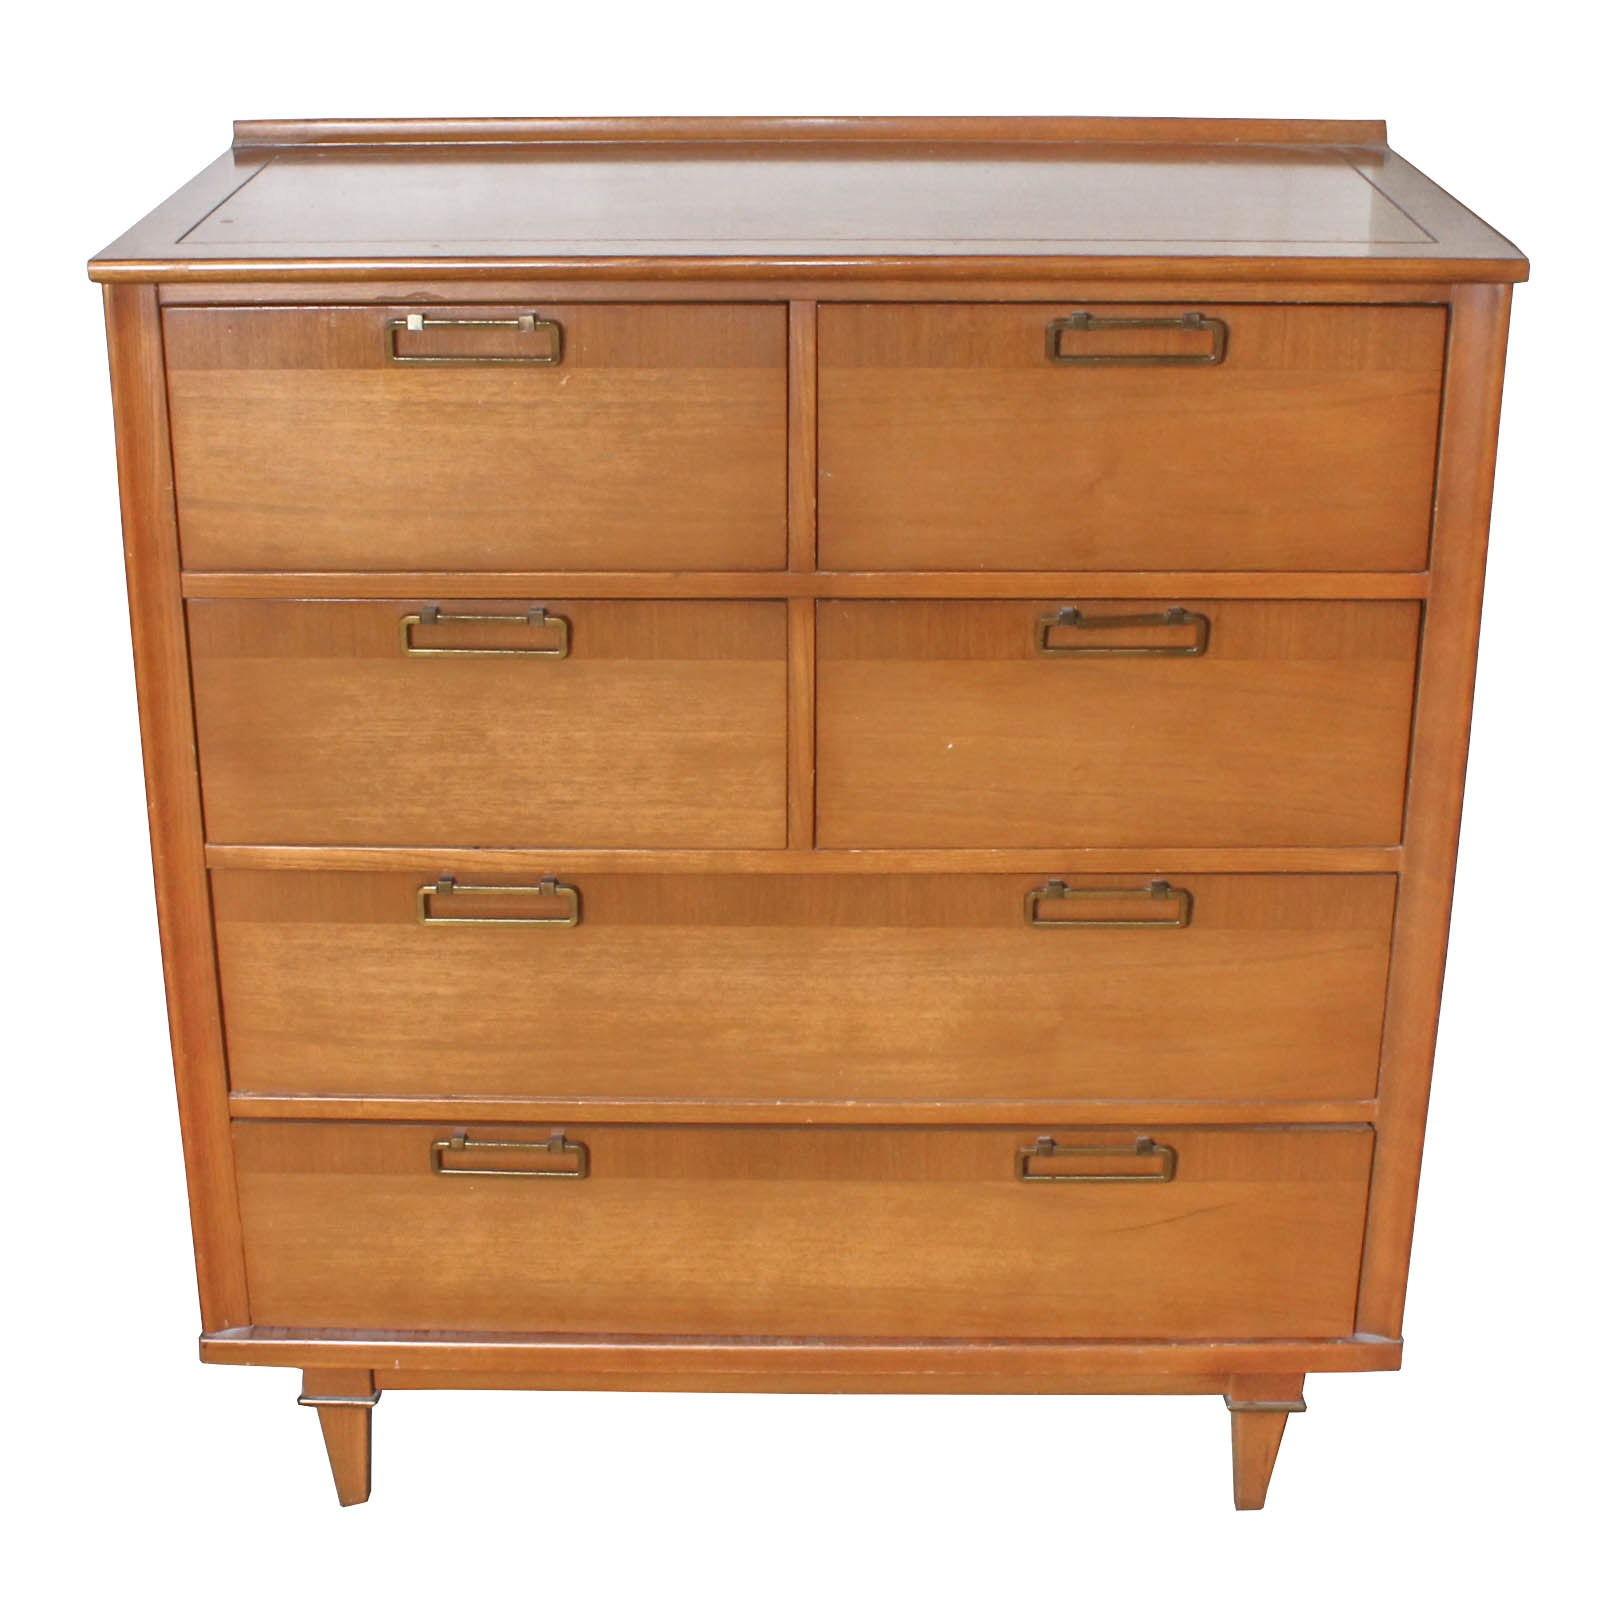 Vintage Mid-Century Chest of Drawers by Stanley